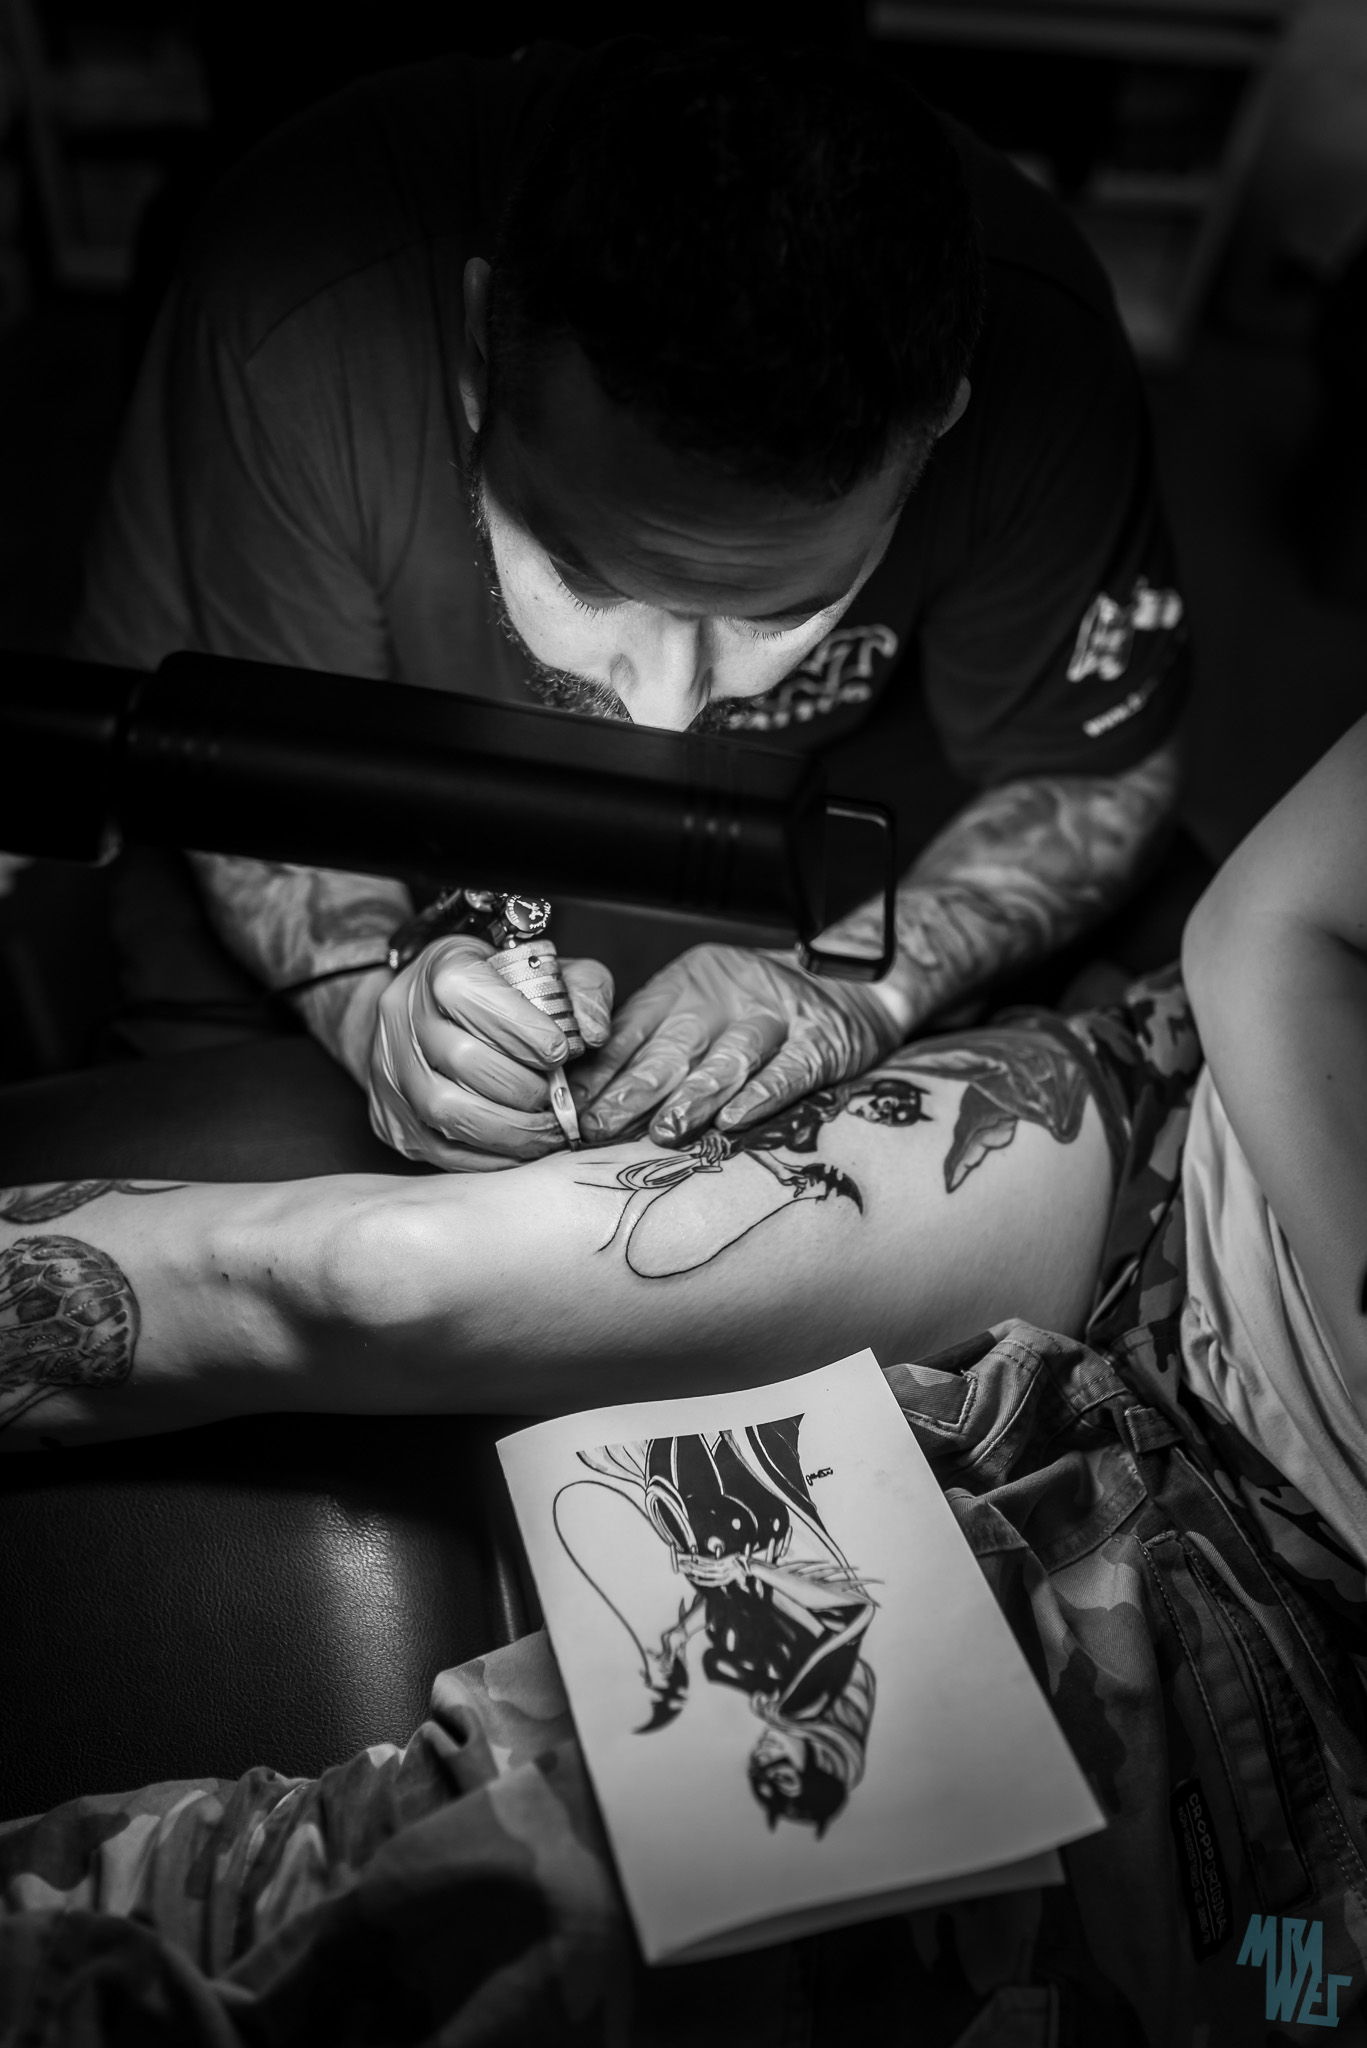 Nat_tattoo_Tešlo__046__web